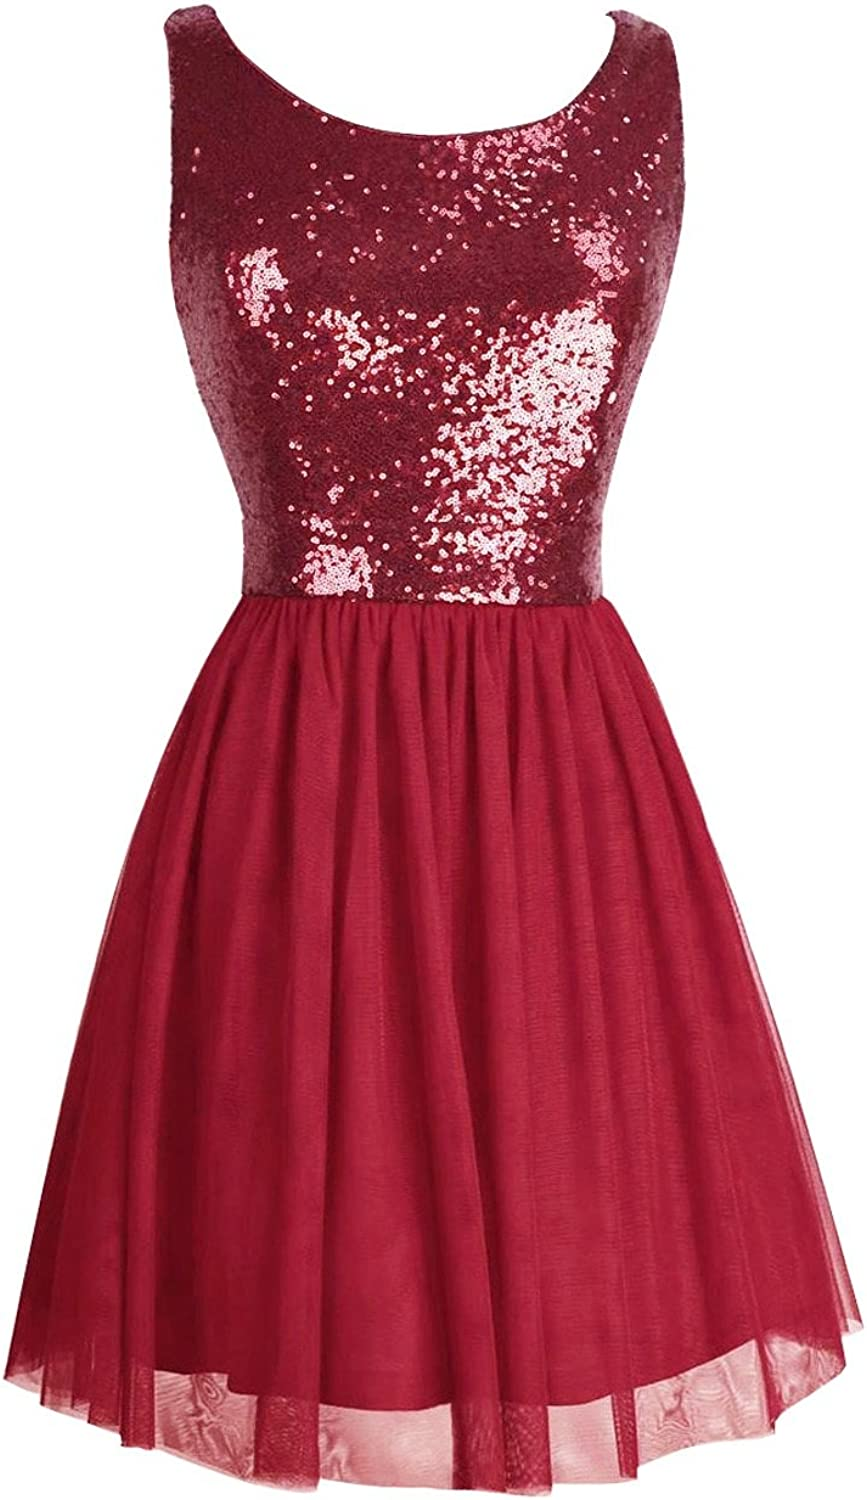 JudyBridal Women Short Sexy Glitter Sequins Mini Cocktail Party Dress